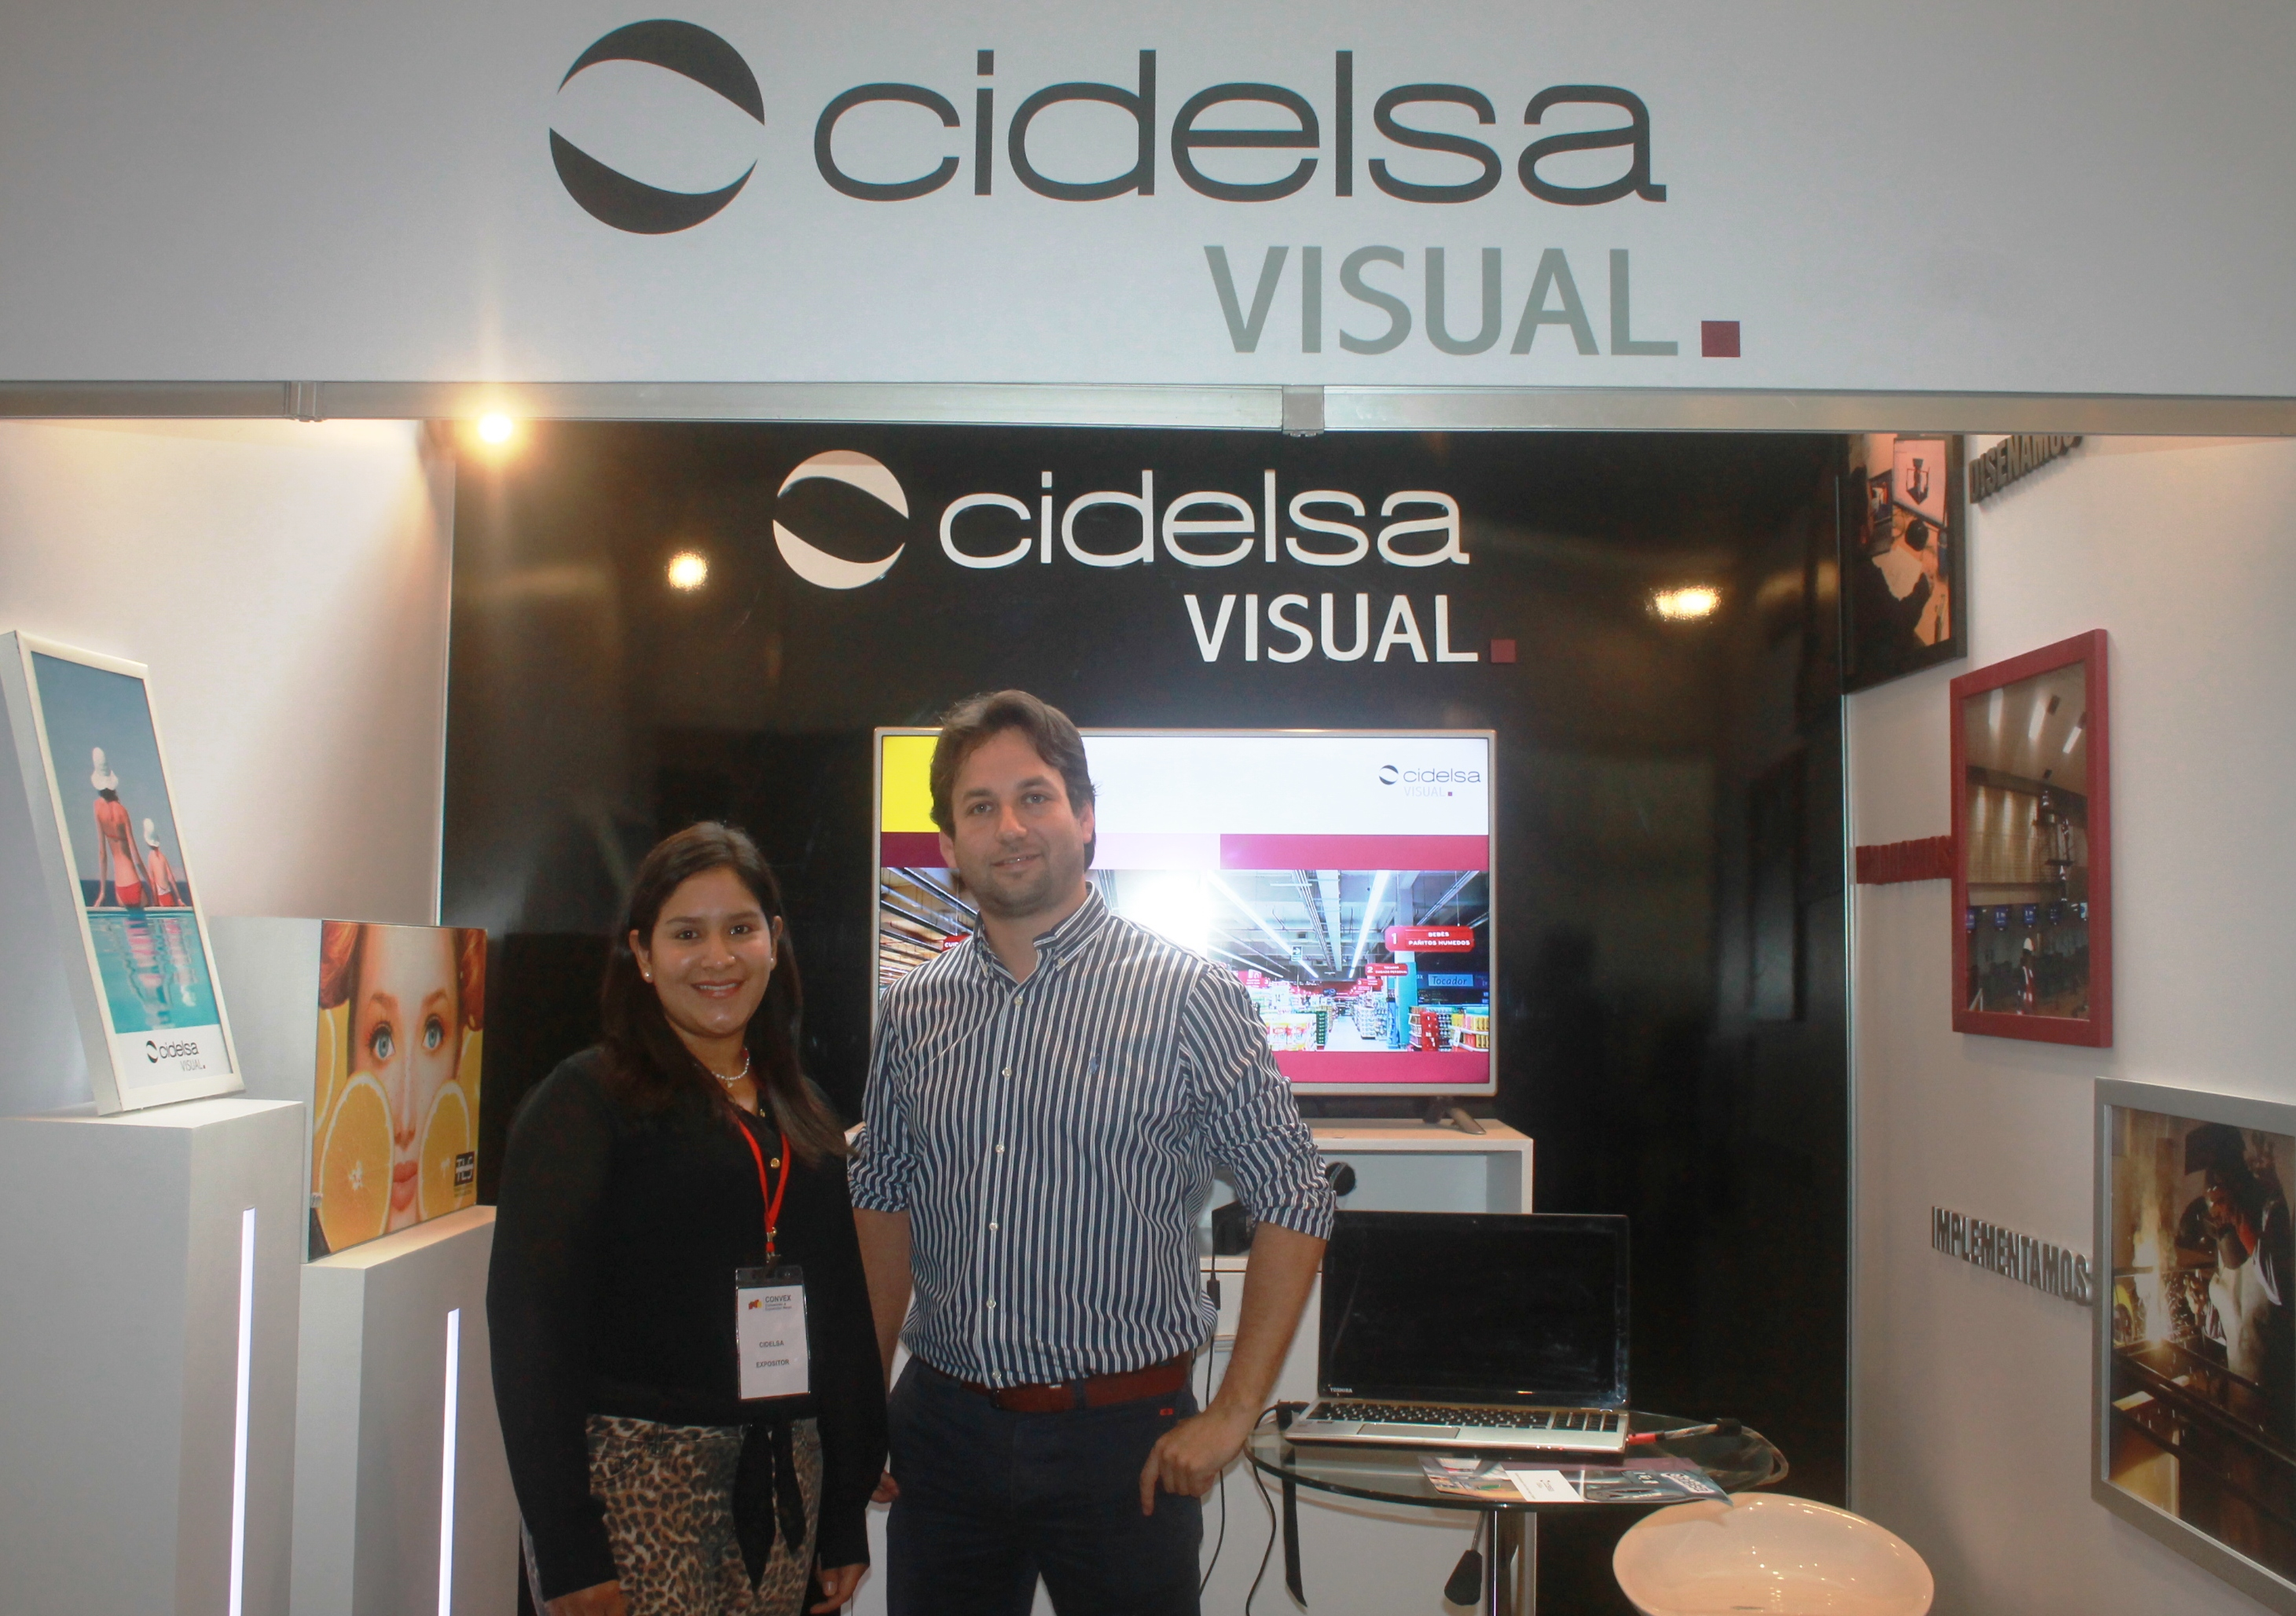 Cidelsa Visual